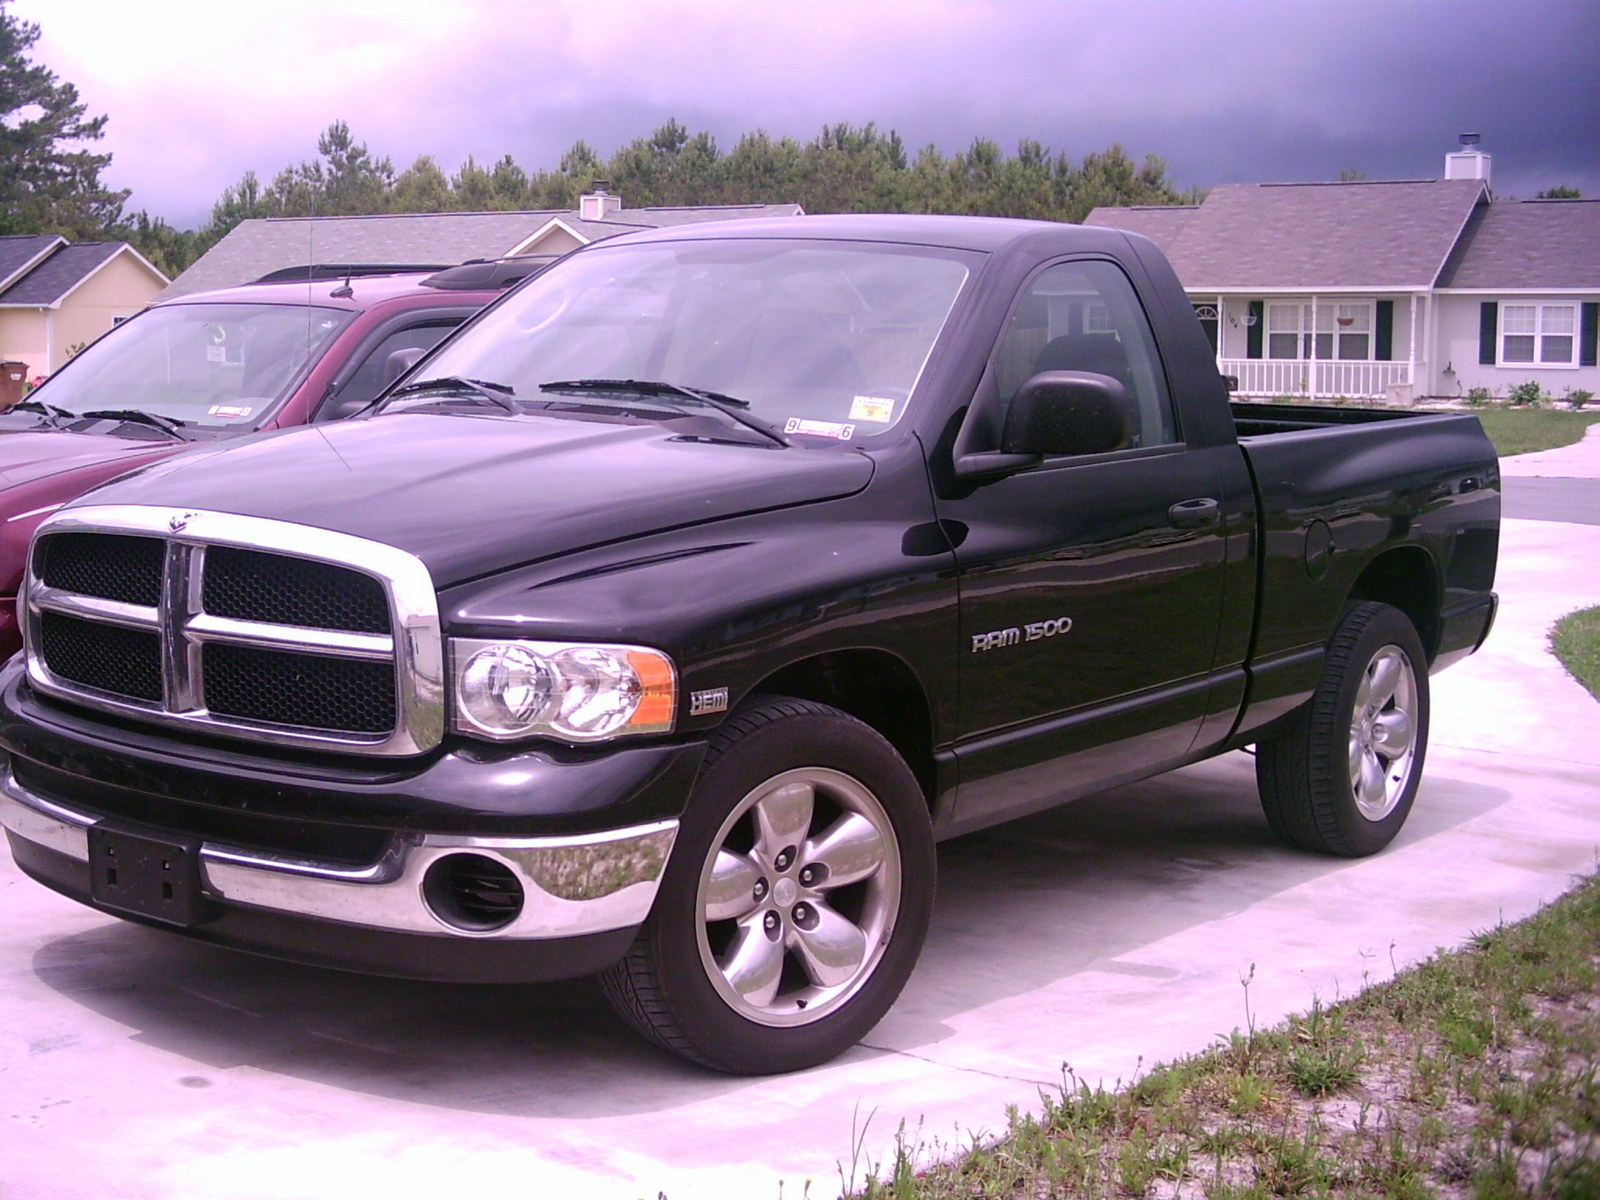 2003 Dodge Ram 1500 Accessories Interior Problems Complaints Html Autos Weblog